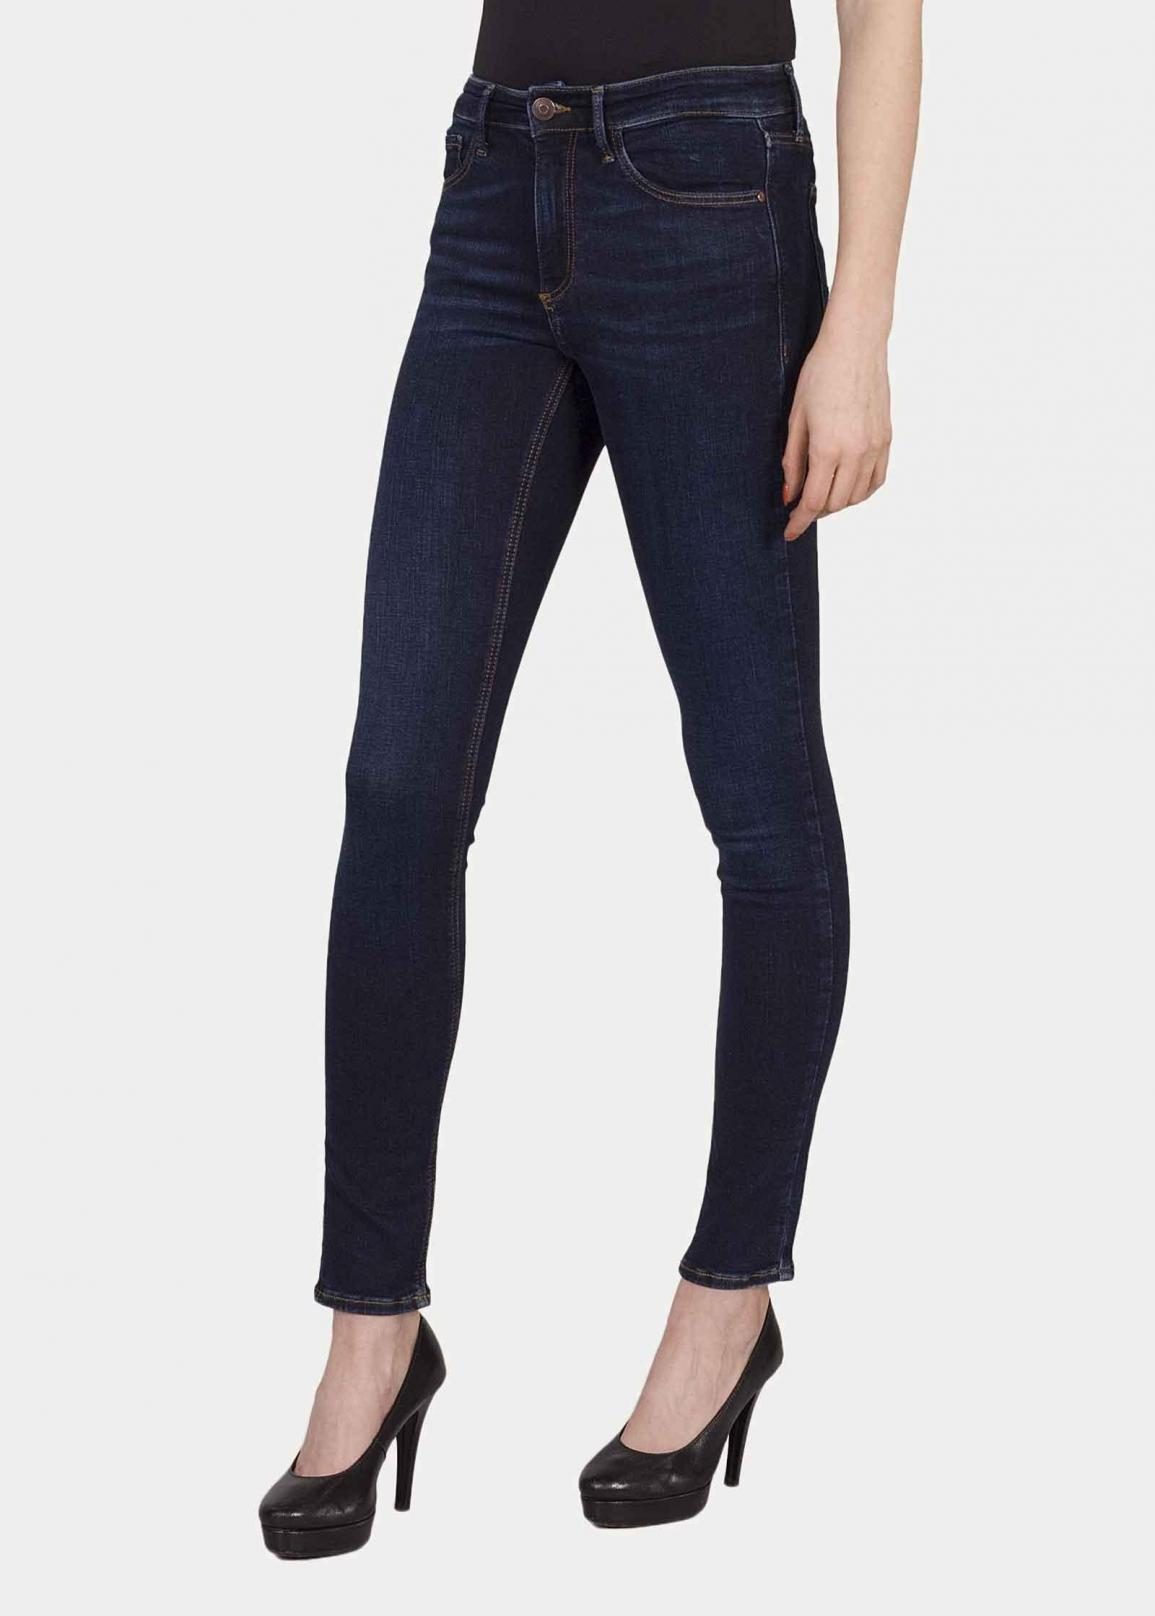 Cross Jeans® Natalia - Dark Denim (115)